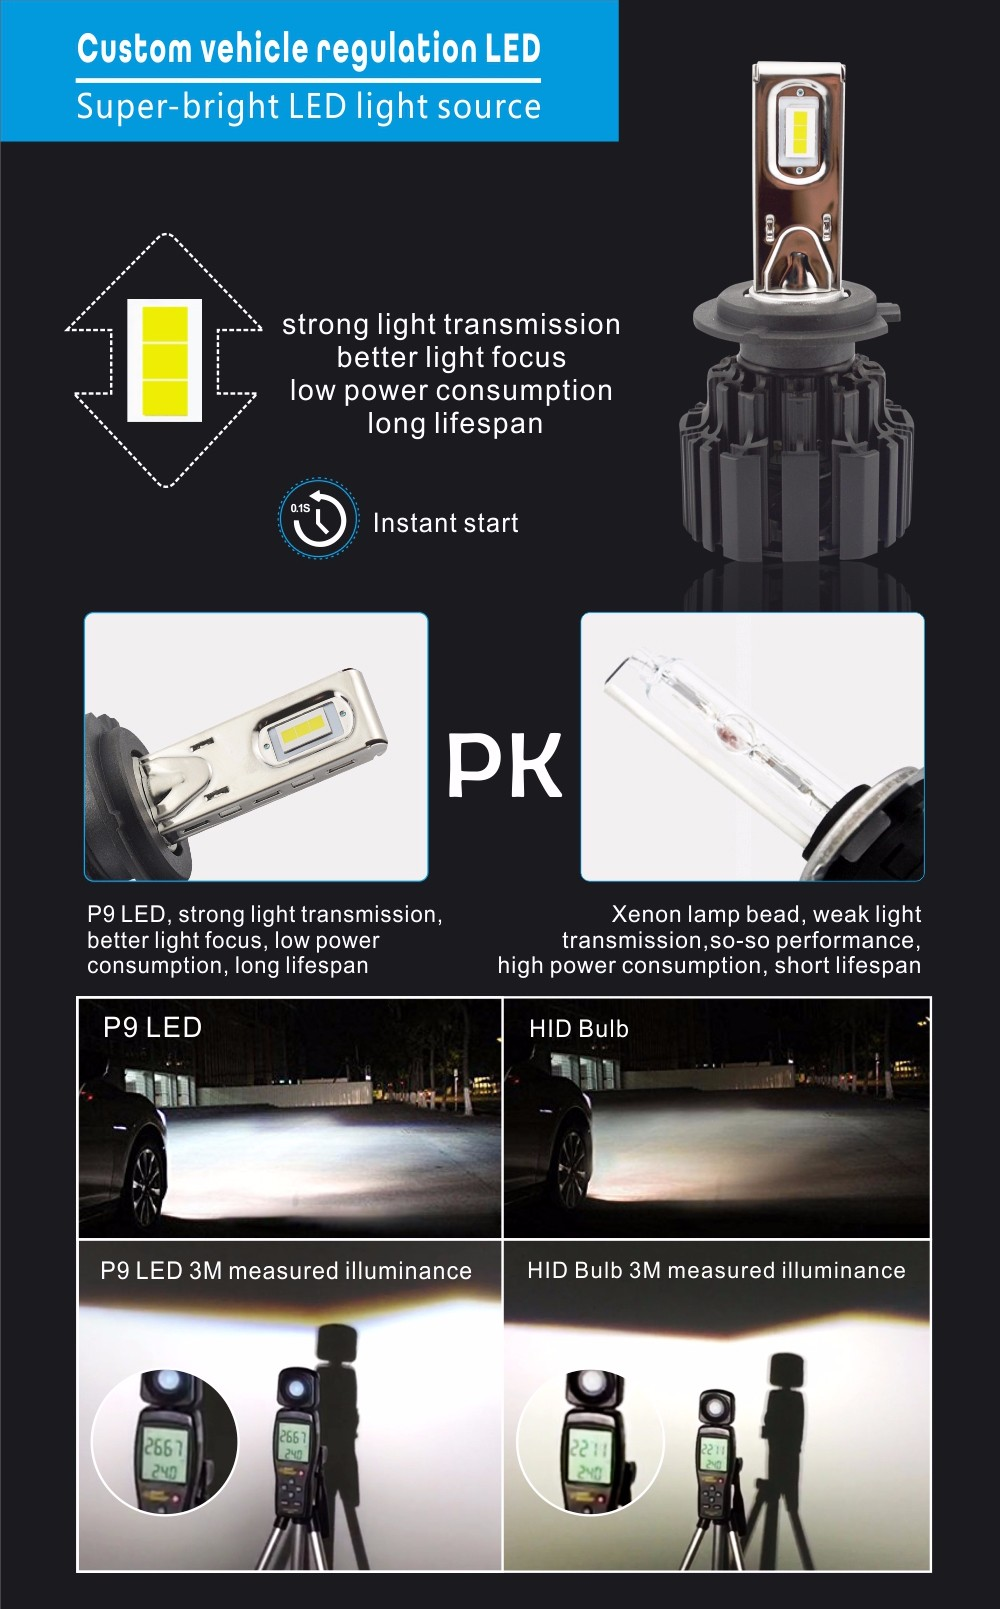 P9 100w led headlight with good beam-focusing